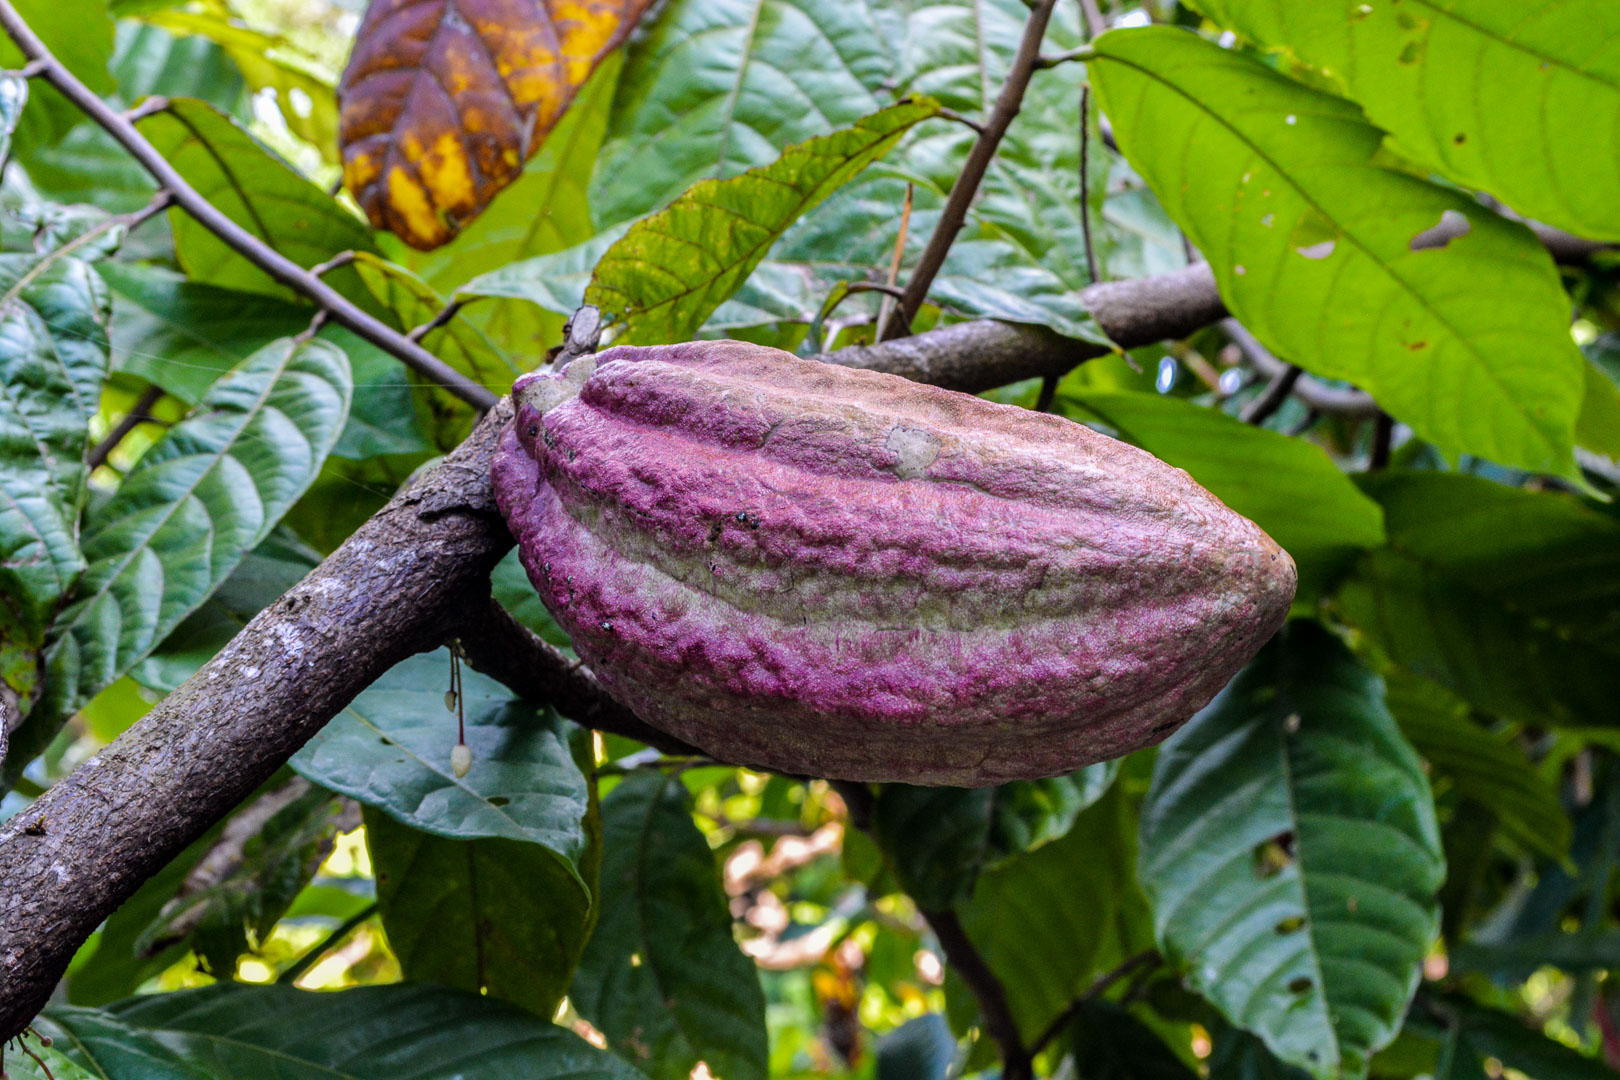 One of the many varieties of cacao pods